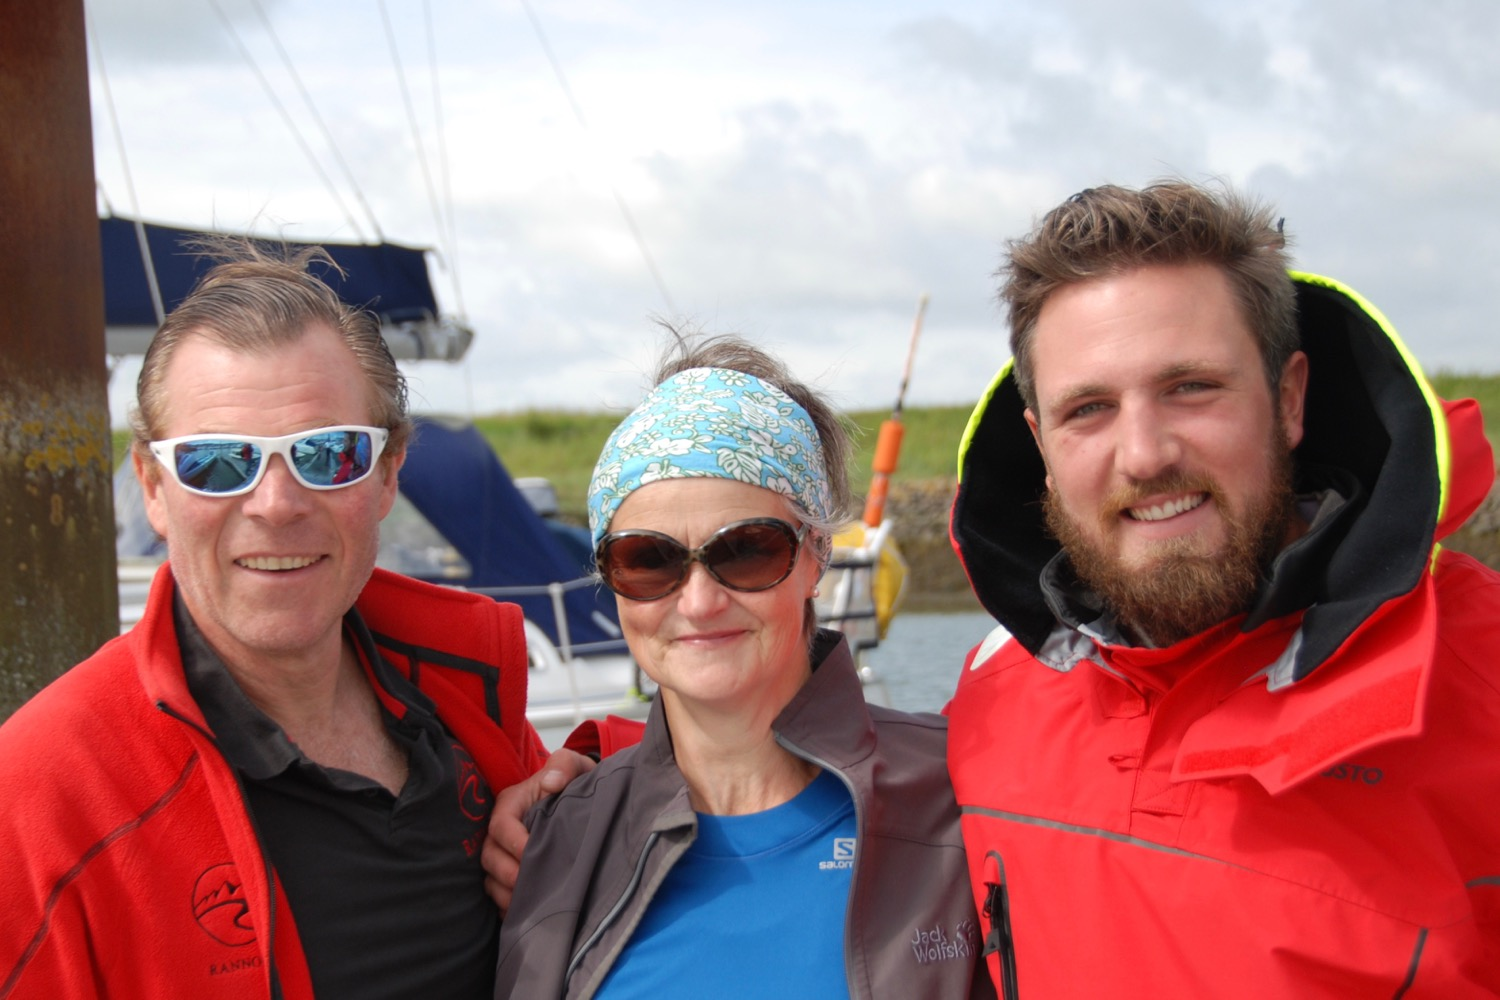 Charlie Pitcher and Angus Collins who have rowed across a lot of ocean